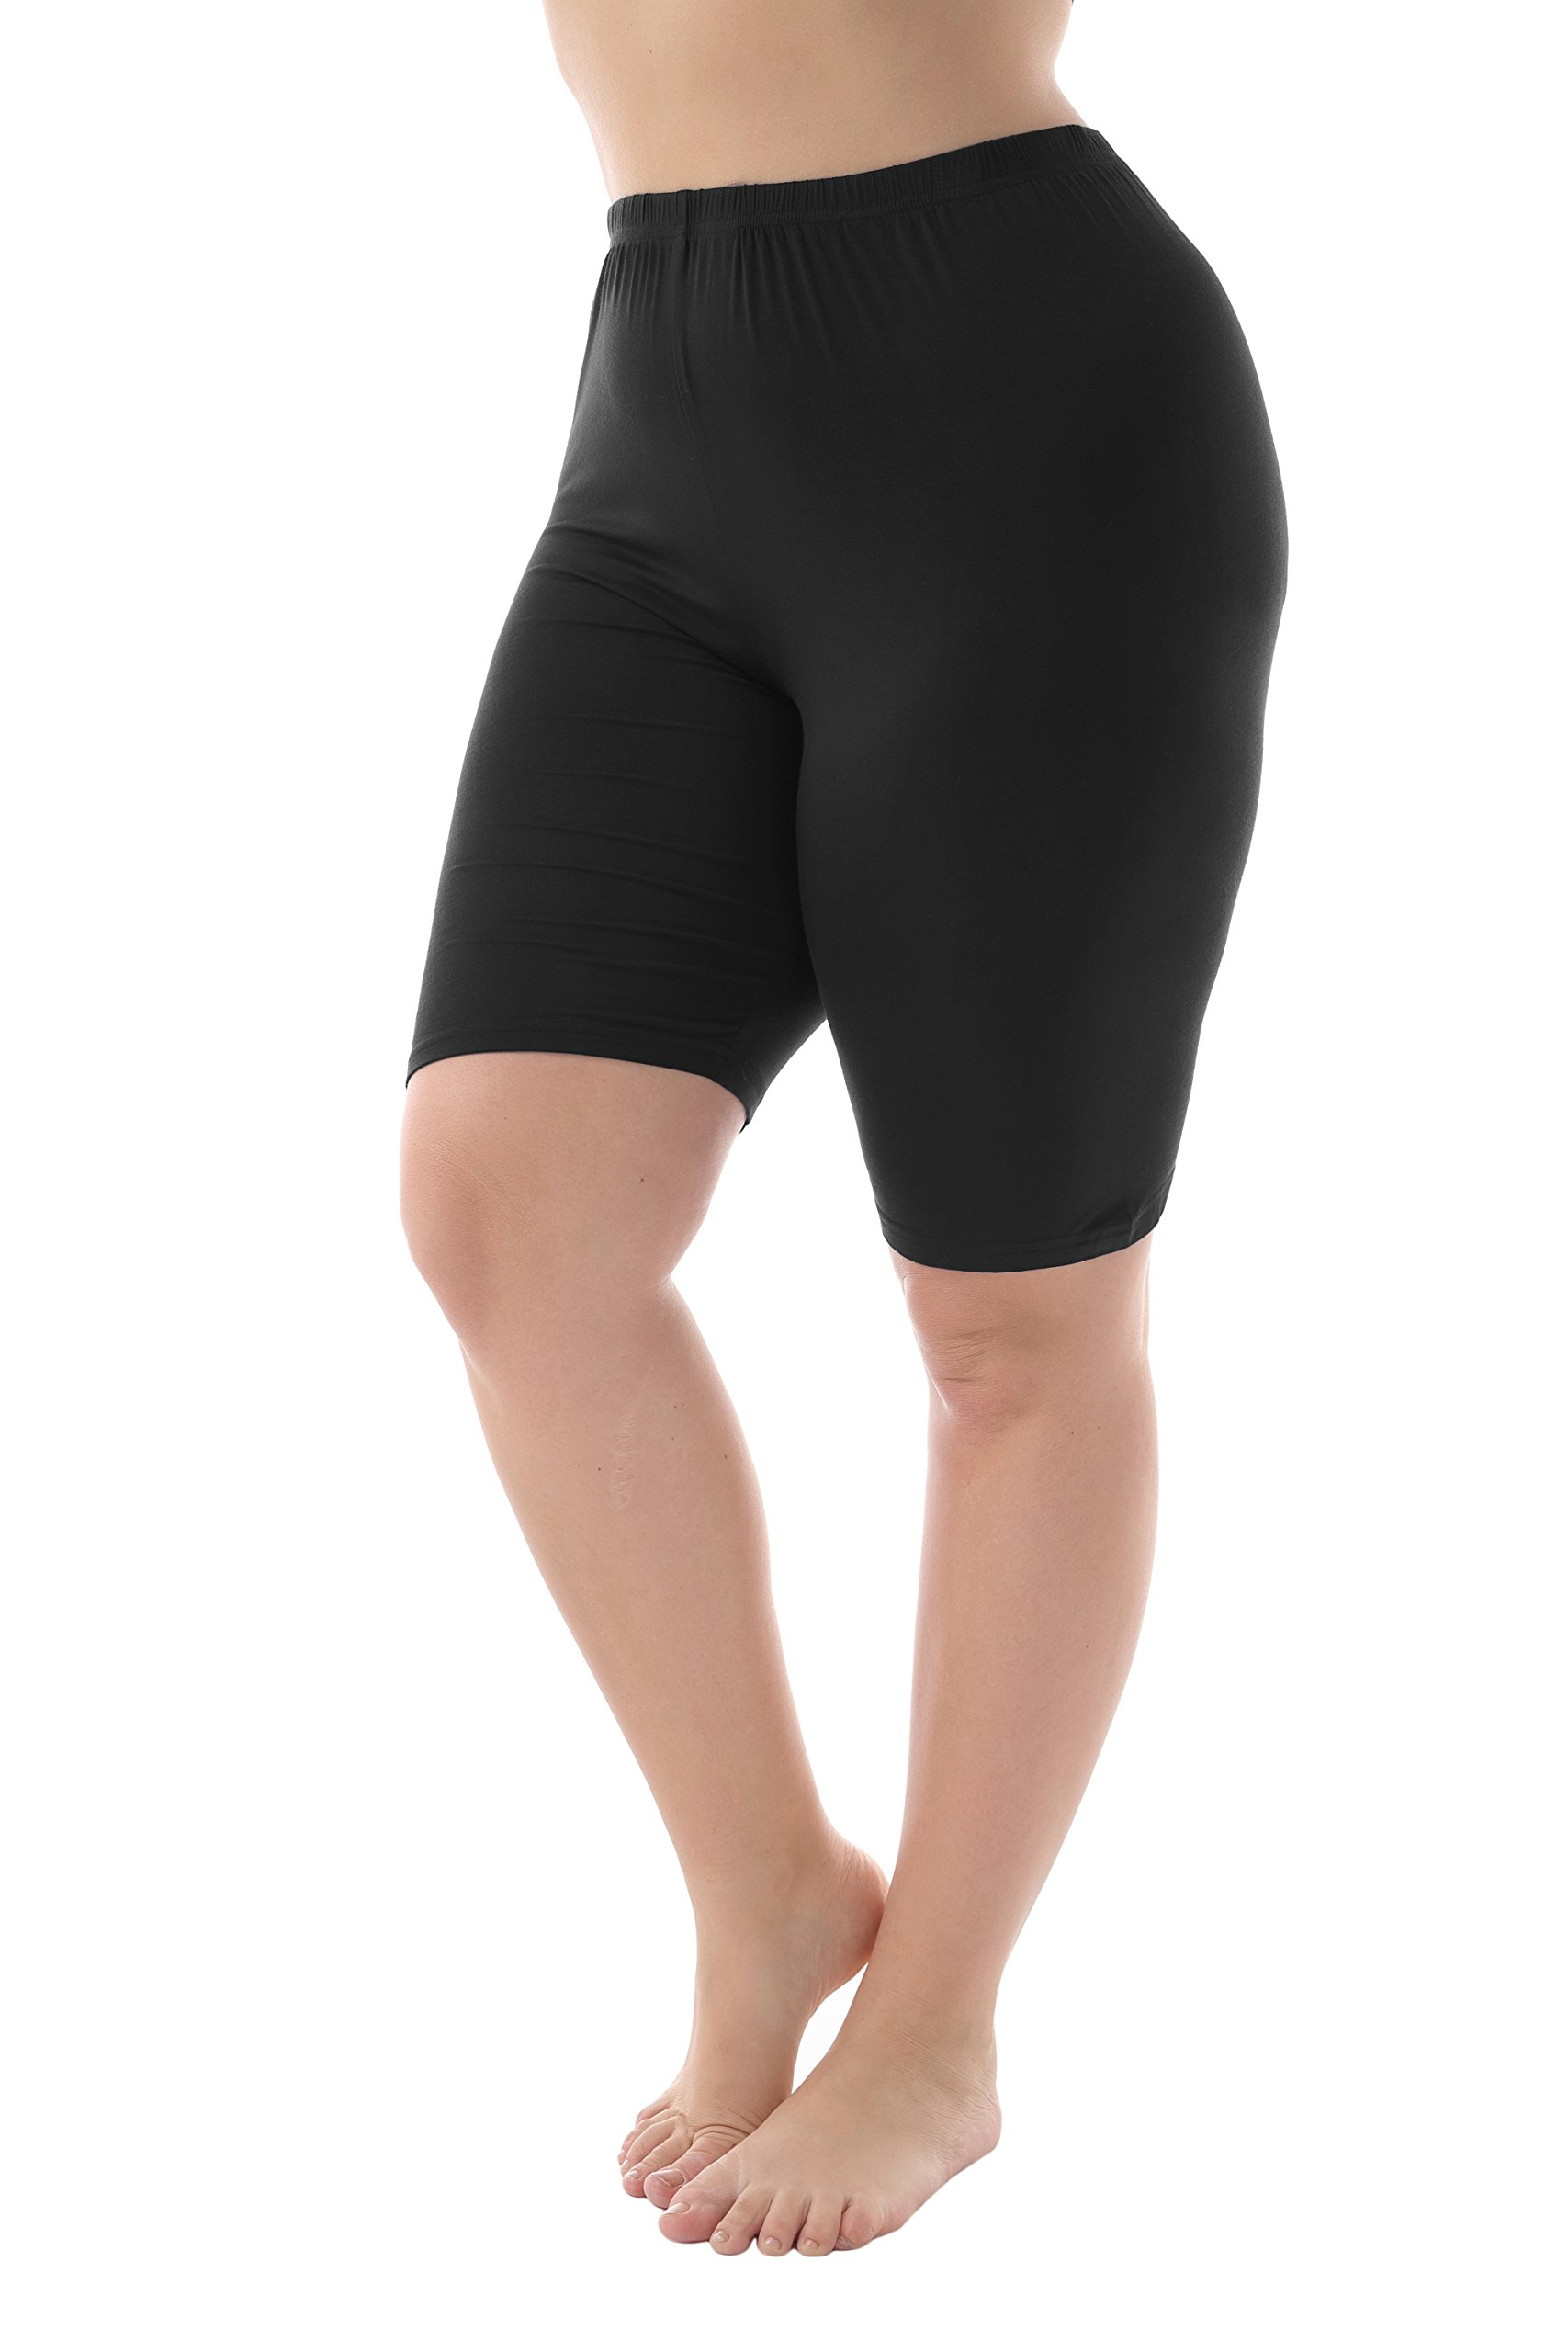 Zerdocean Leggings Women's Modal Plus Size Mid Thigh Shorts Black 4X